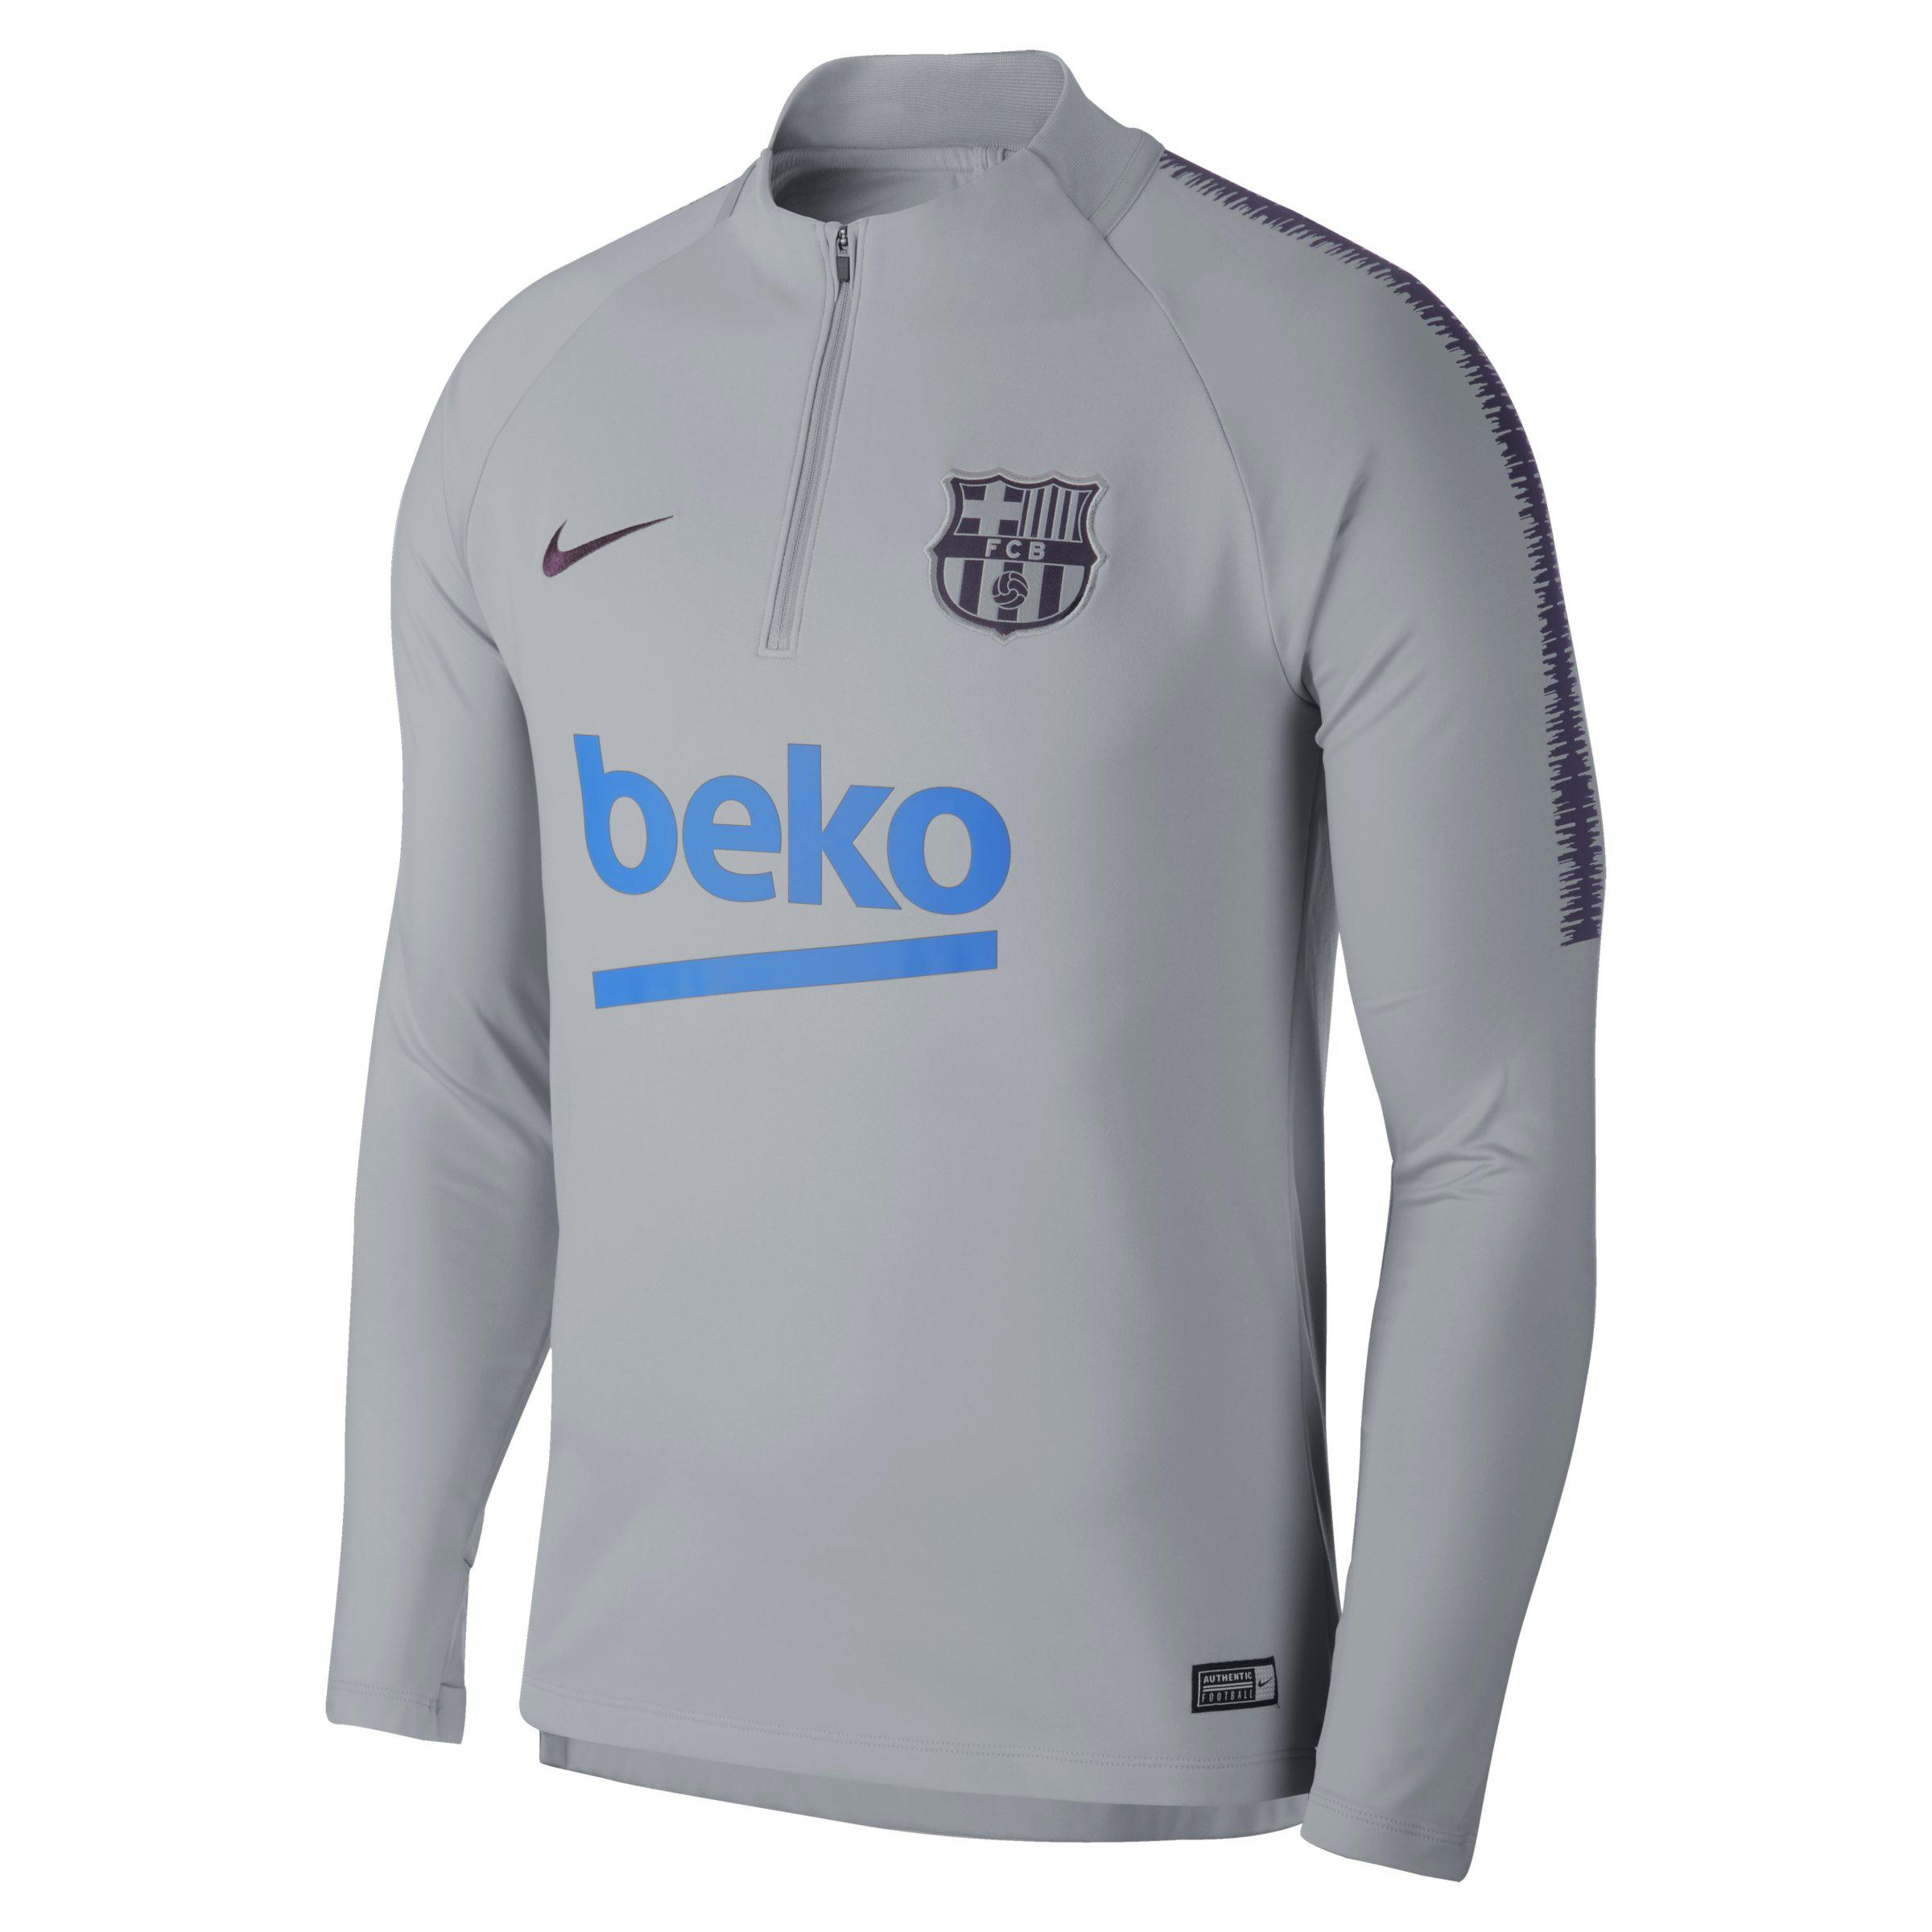 ae66ee080 Nike Fc Barcelona Dri-fit Squad Drill Long-sleeve Football Top in ...